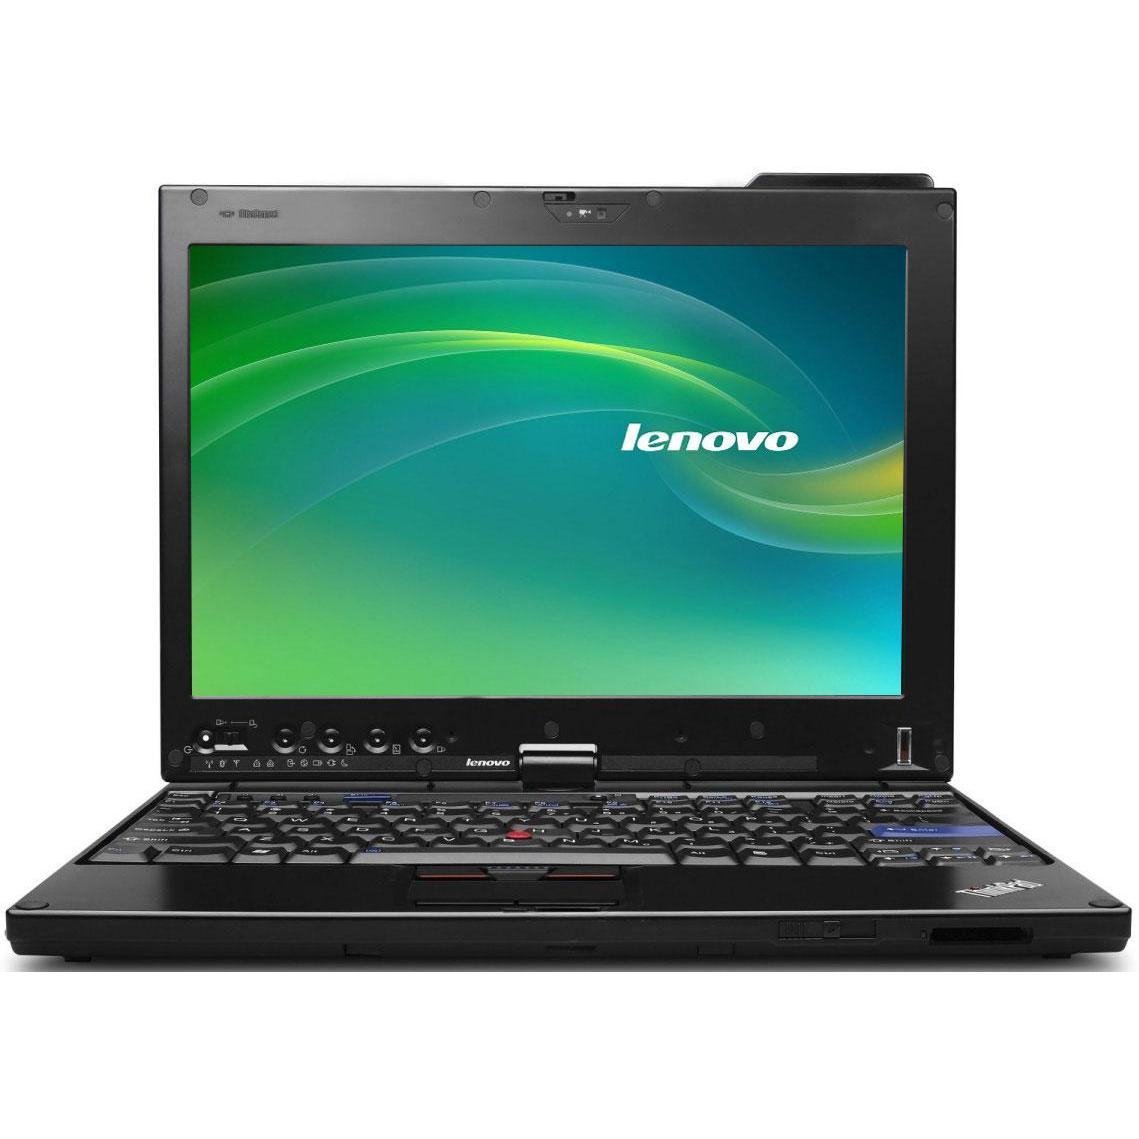 Lenovo  Thinkpad X201 - Intel Core i5 2.53  GHz - HDD 160 Go - RAM 2 Go Go - AZERTY